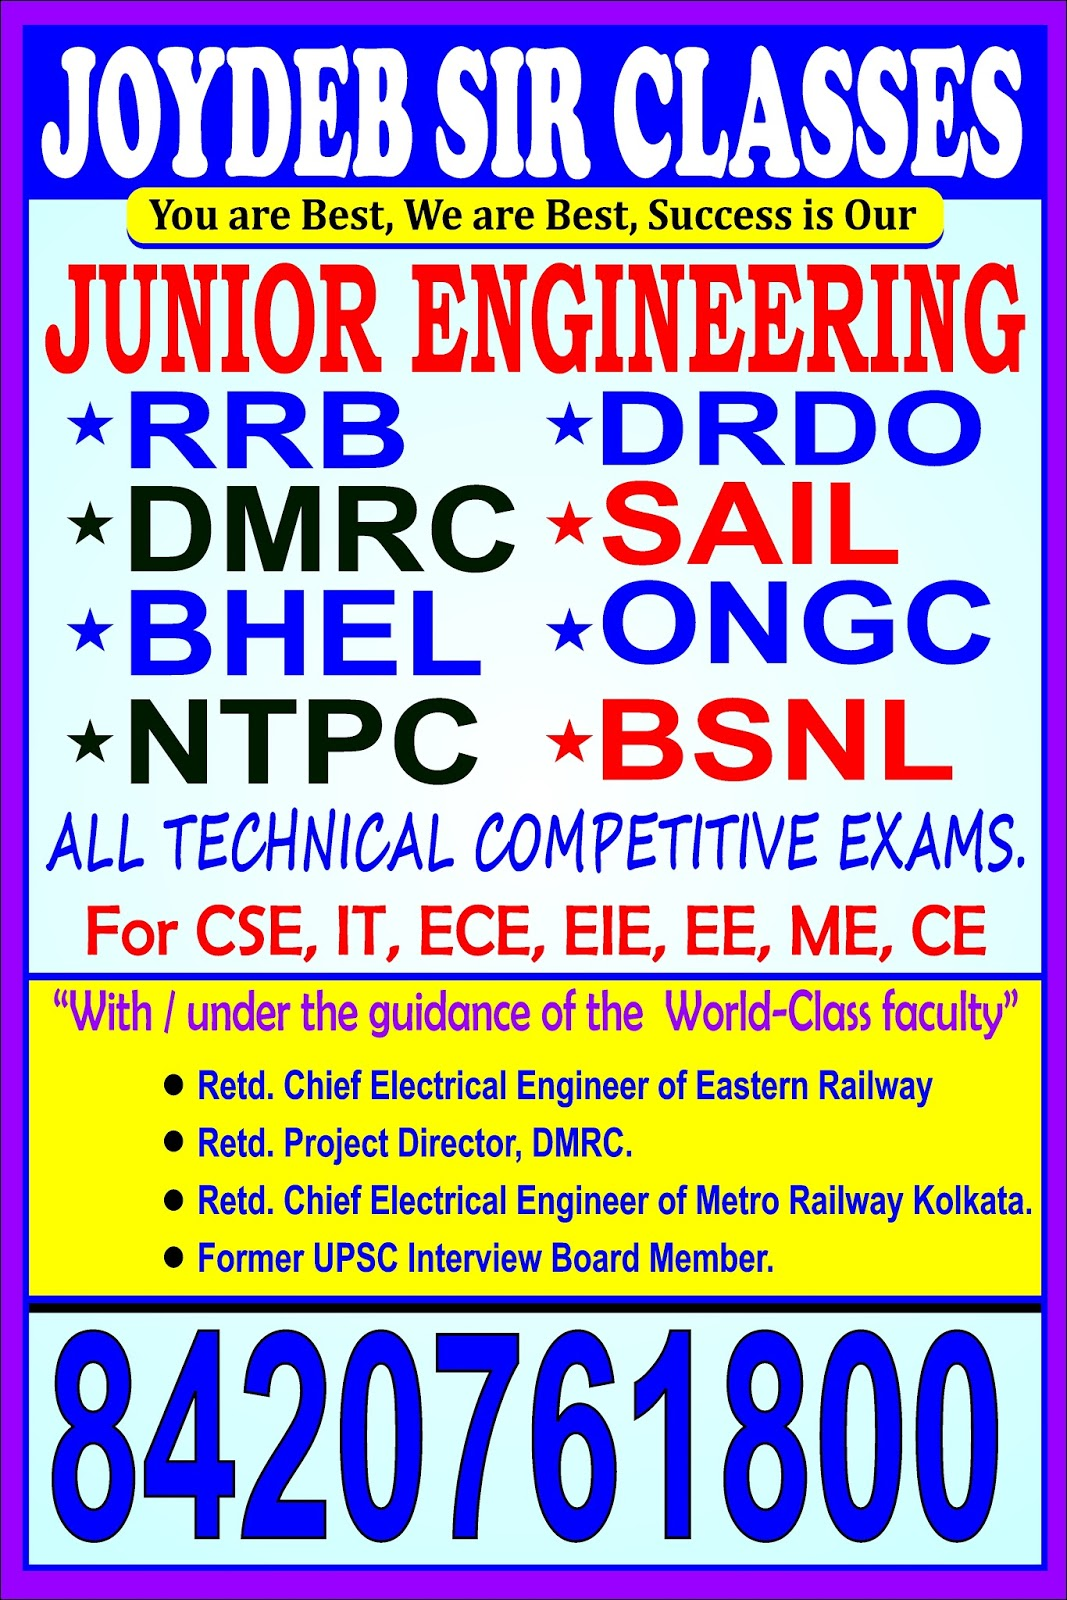 RRB SSE TECHNICAL JUNIOR ENGINEER COACHING PH 8420761800